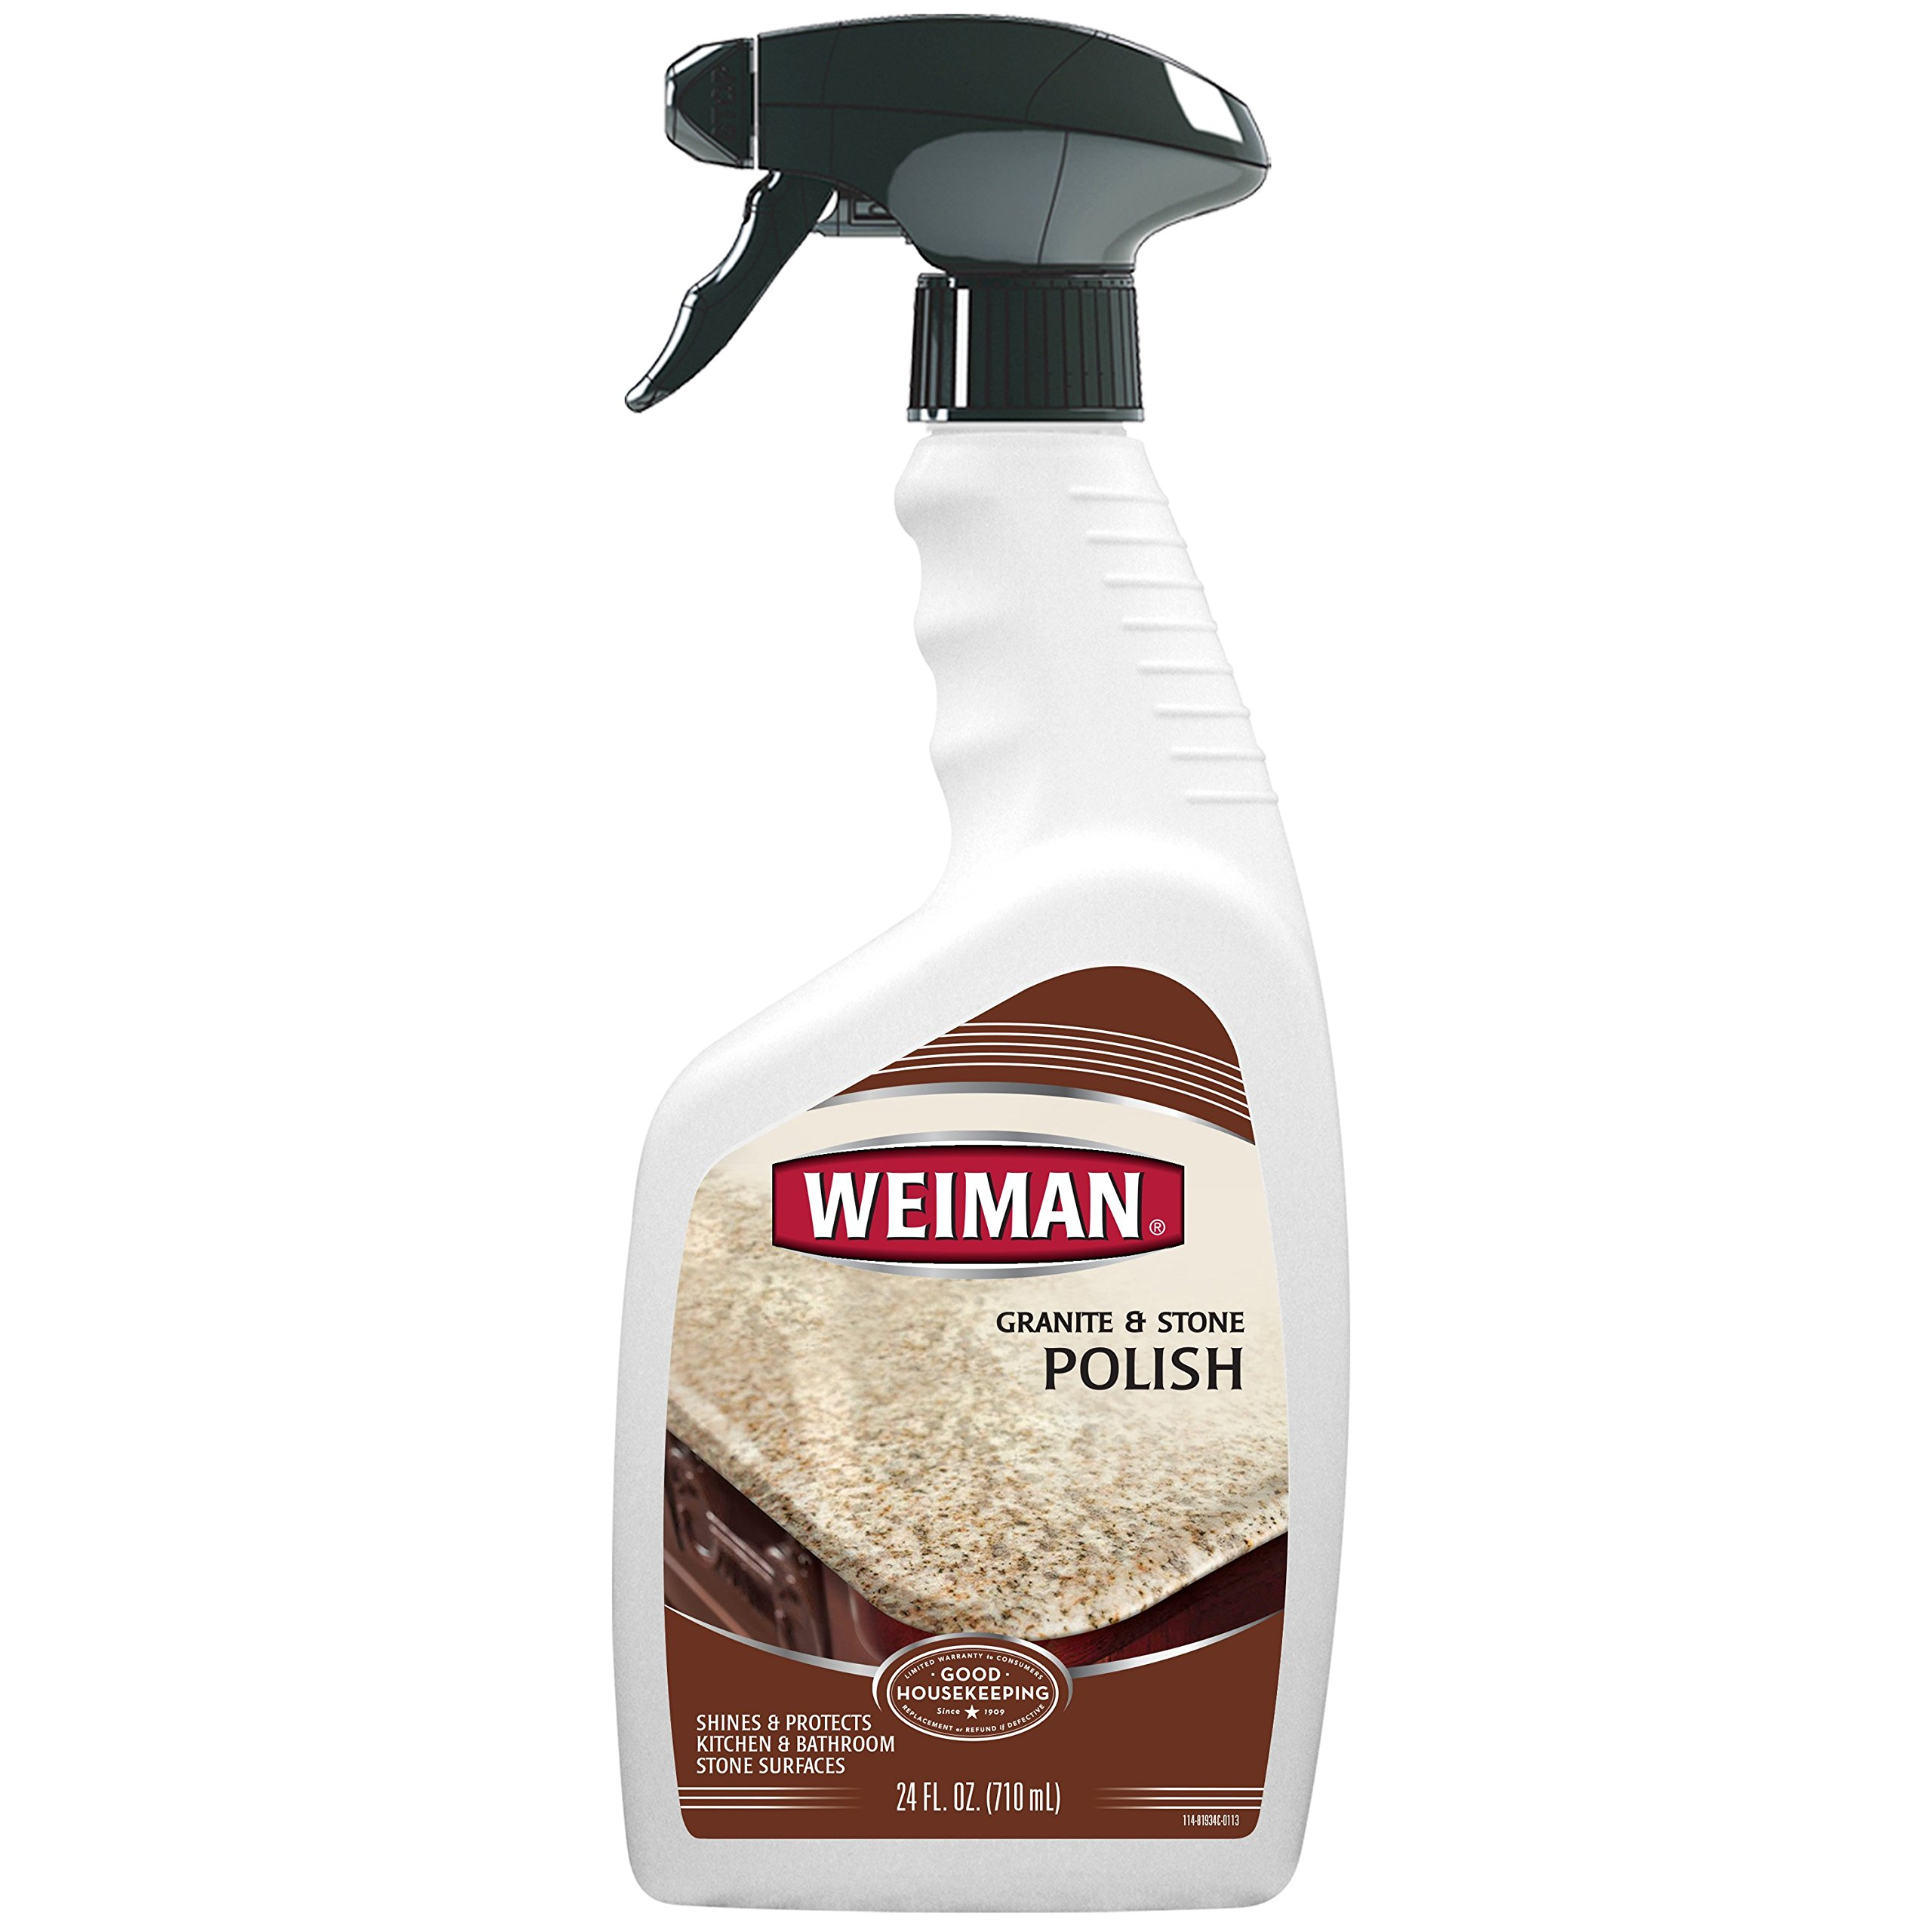 Weiman Granite & Stone Polish - Streak-Free, pH Neutral Formula for Daily Use on Interior and Exterior Natural Stone - 24 Fl. Oz.